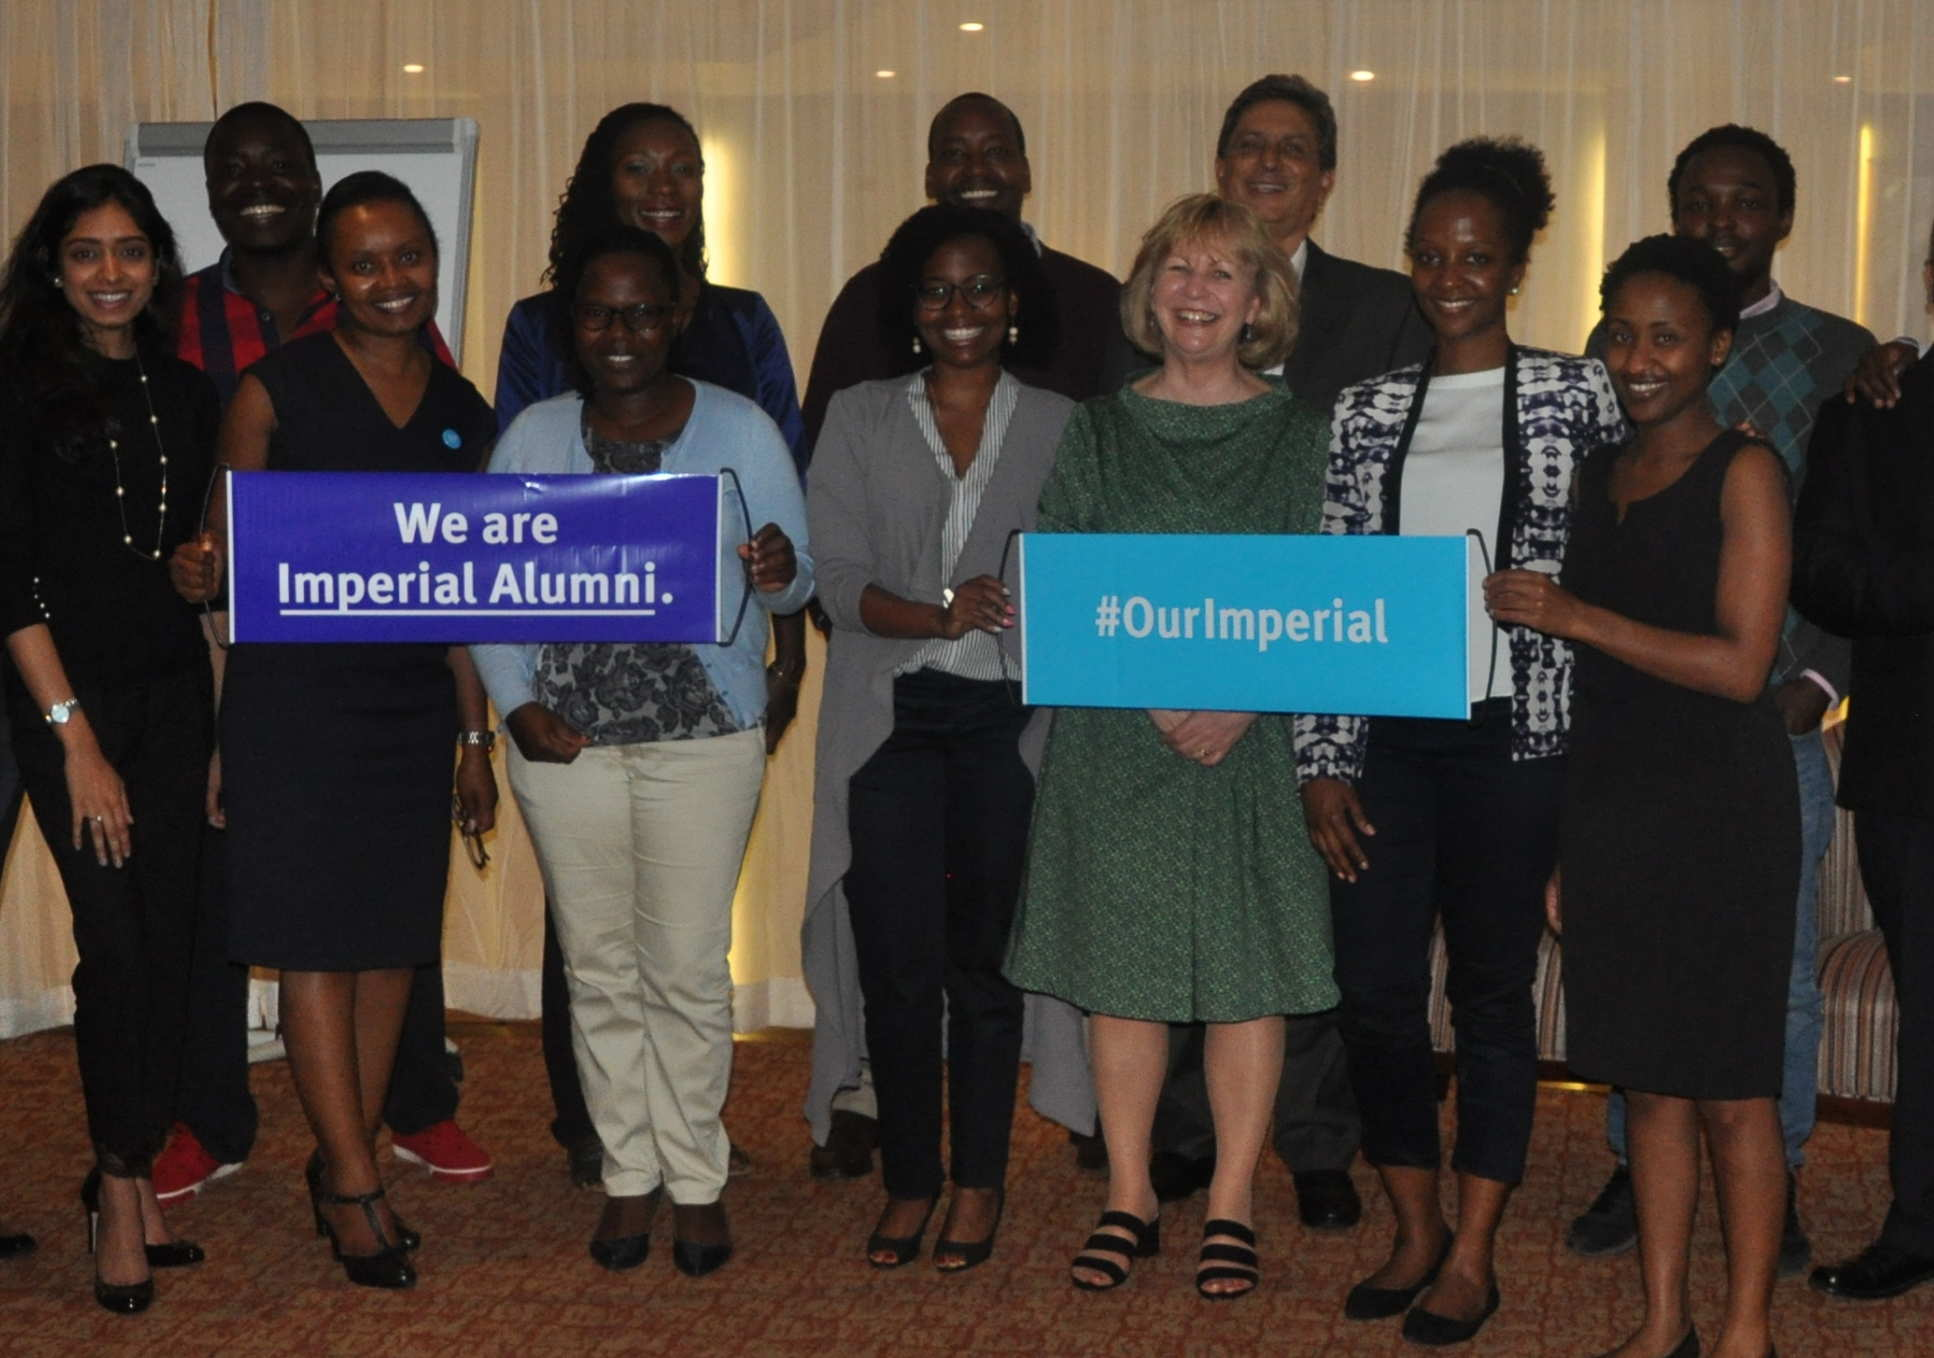 Nairobi in Kenya also held its first ever Imperial alumni event during the trip